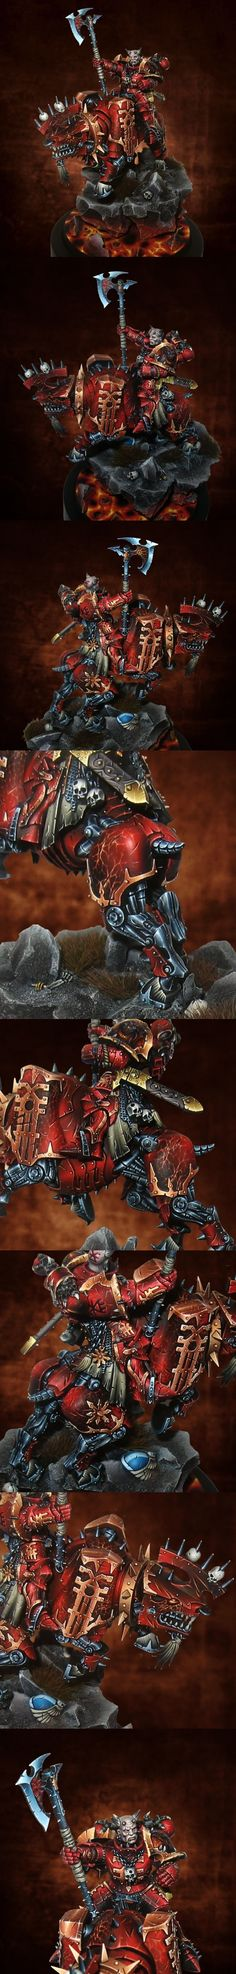 Khorne Lord on Juggernaught. Dark background